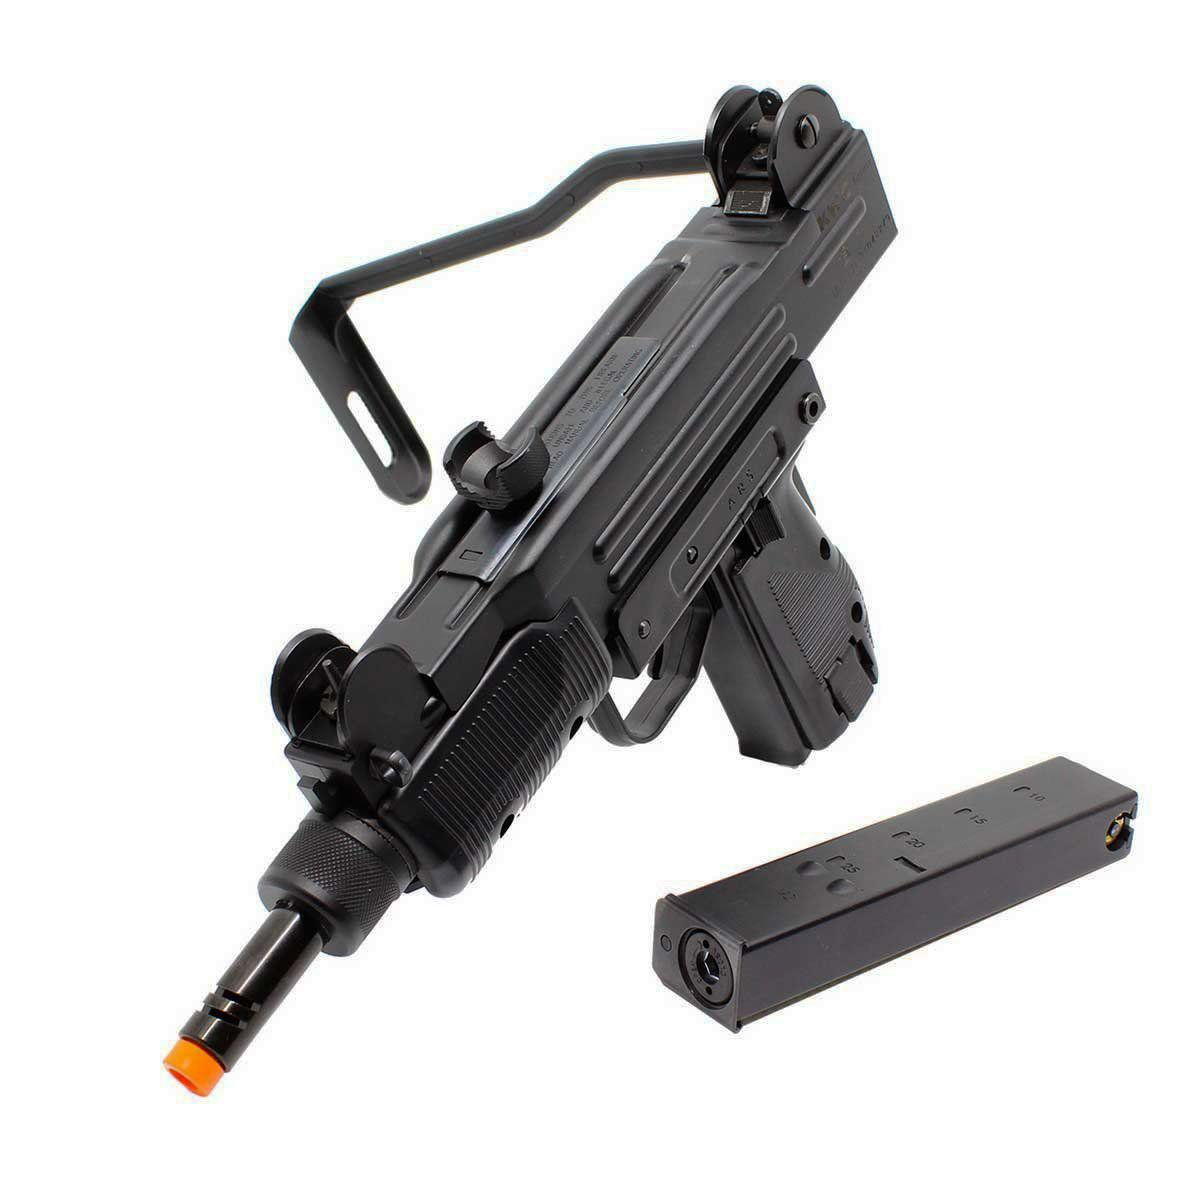 Submetralhadora de Airsoft KWC Mini Uzi Metal CO2 Calibre 6mm